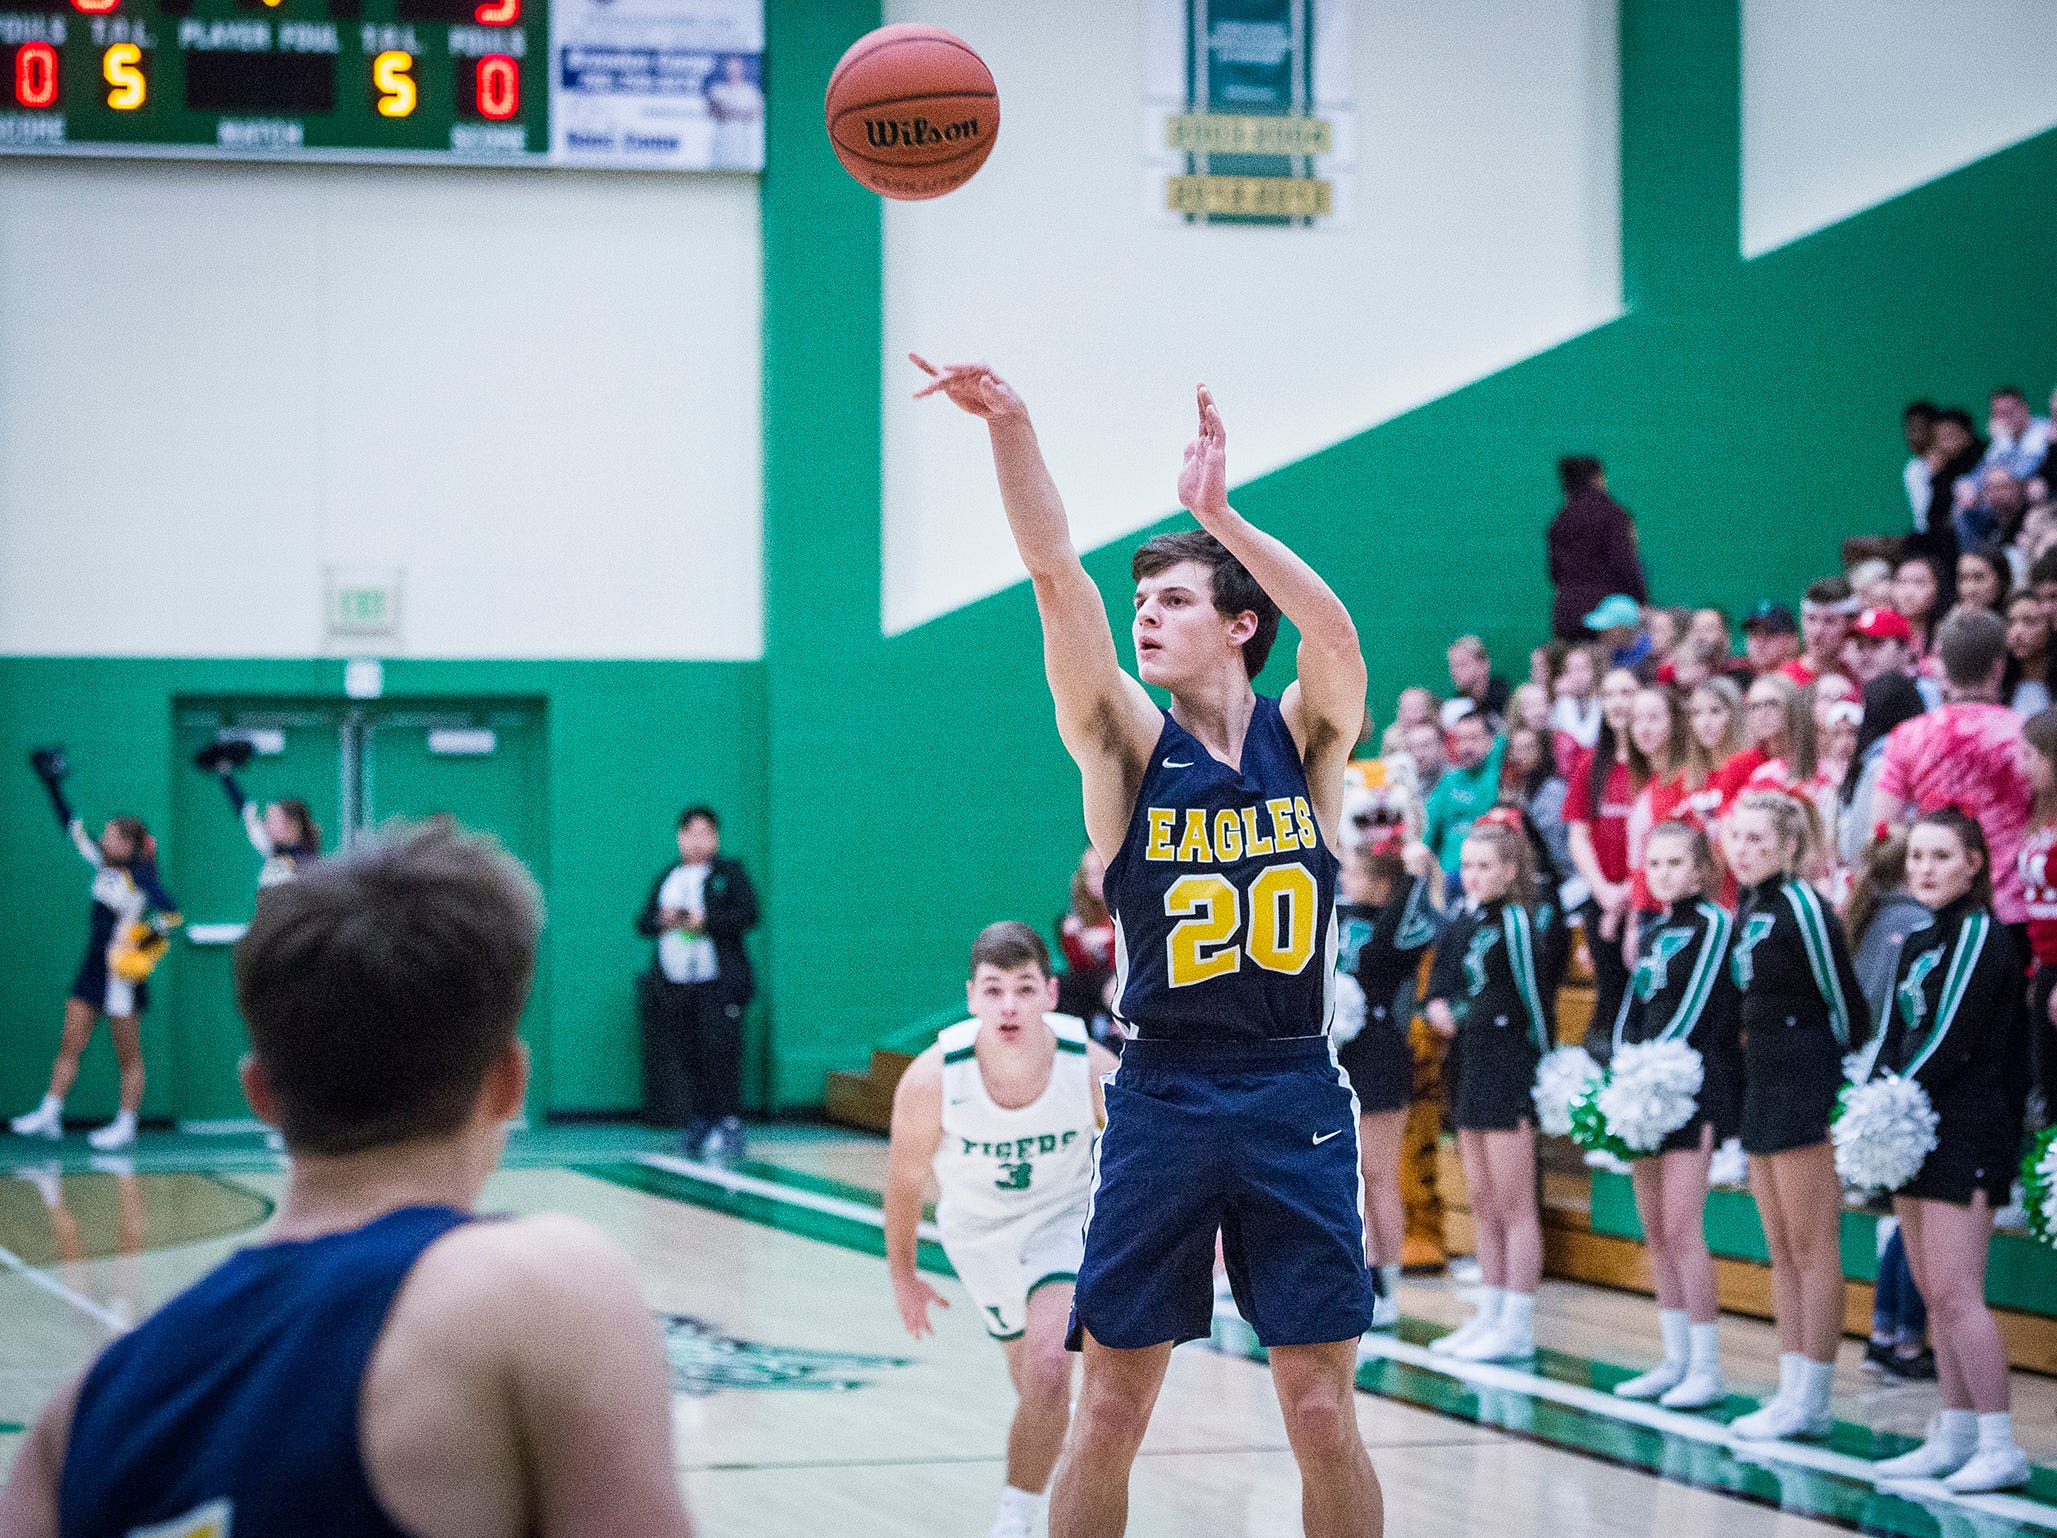 Delta's Josh Greenberg shoots a three pointer against Yorktown's defense during their game at Yorktown High School Saturday, Dec. 7, 2018.